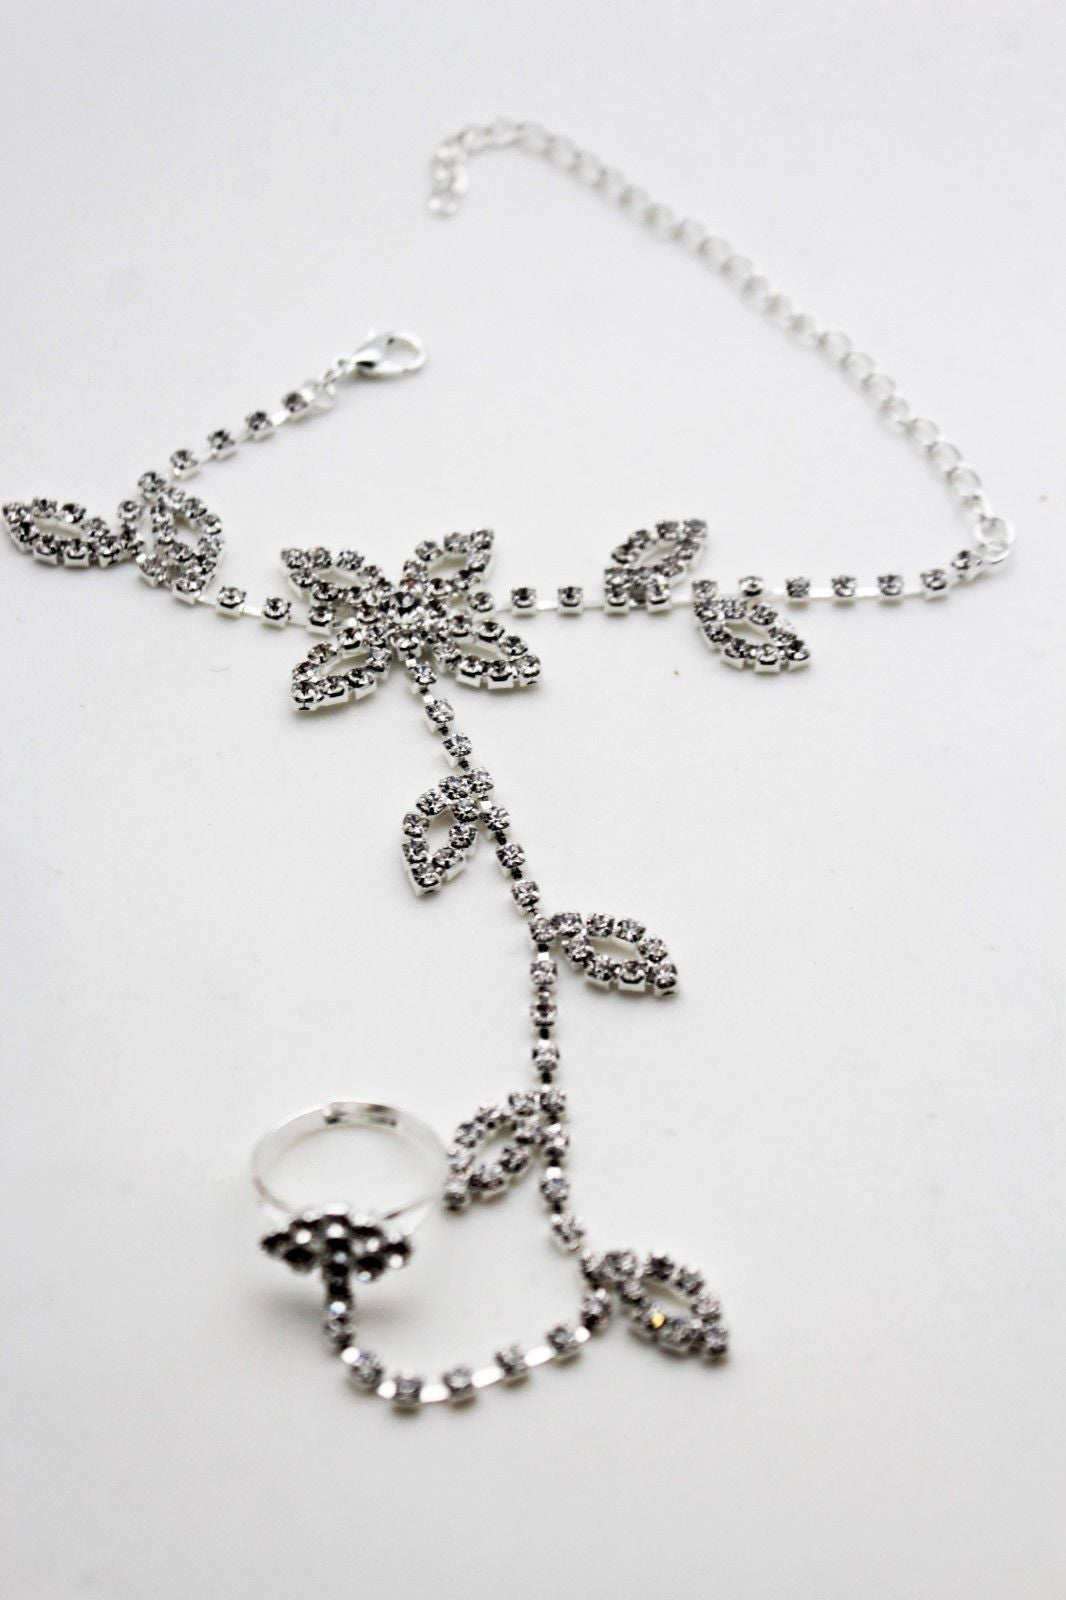 necklaces flower d diamond more silver jewellery metal girls childrens for pictures pendant see brands necklace